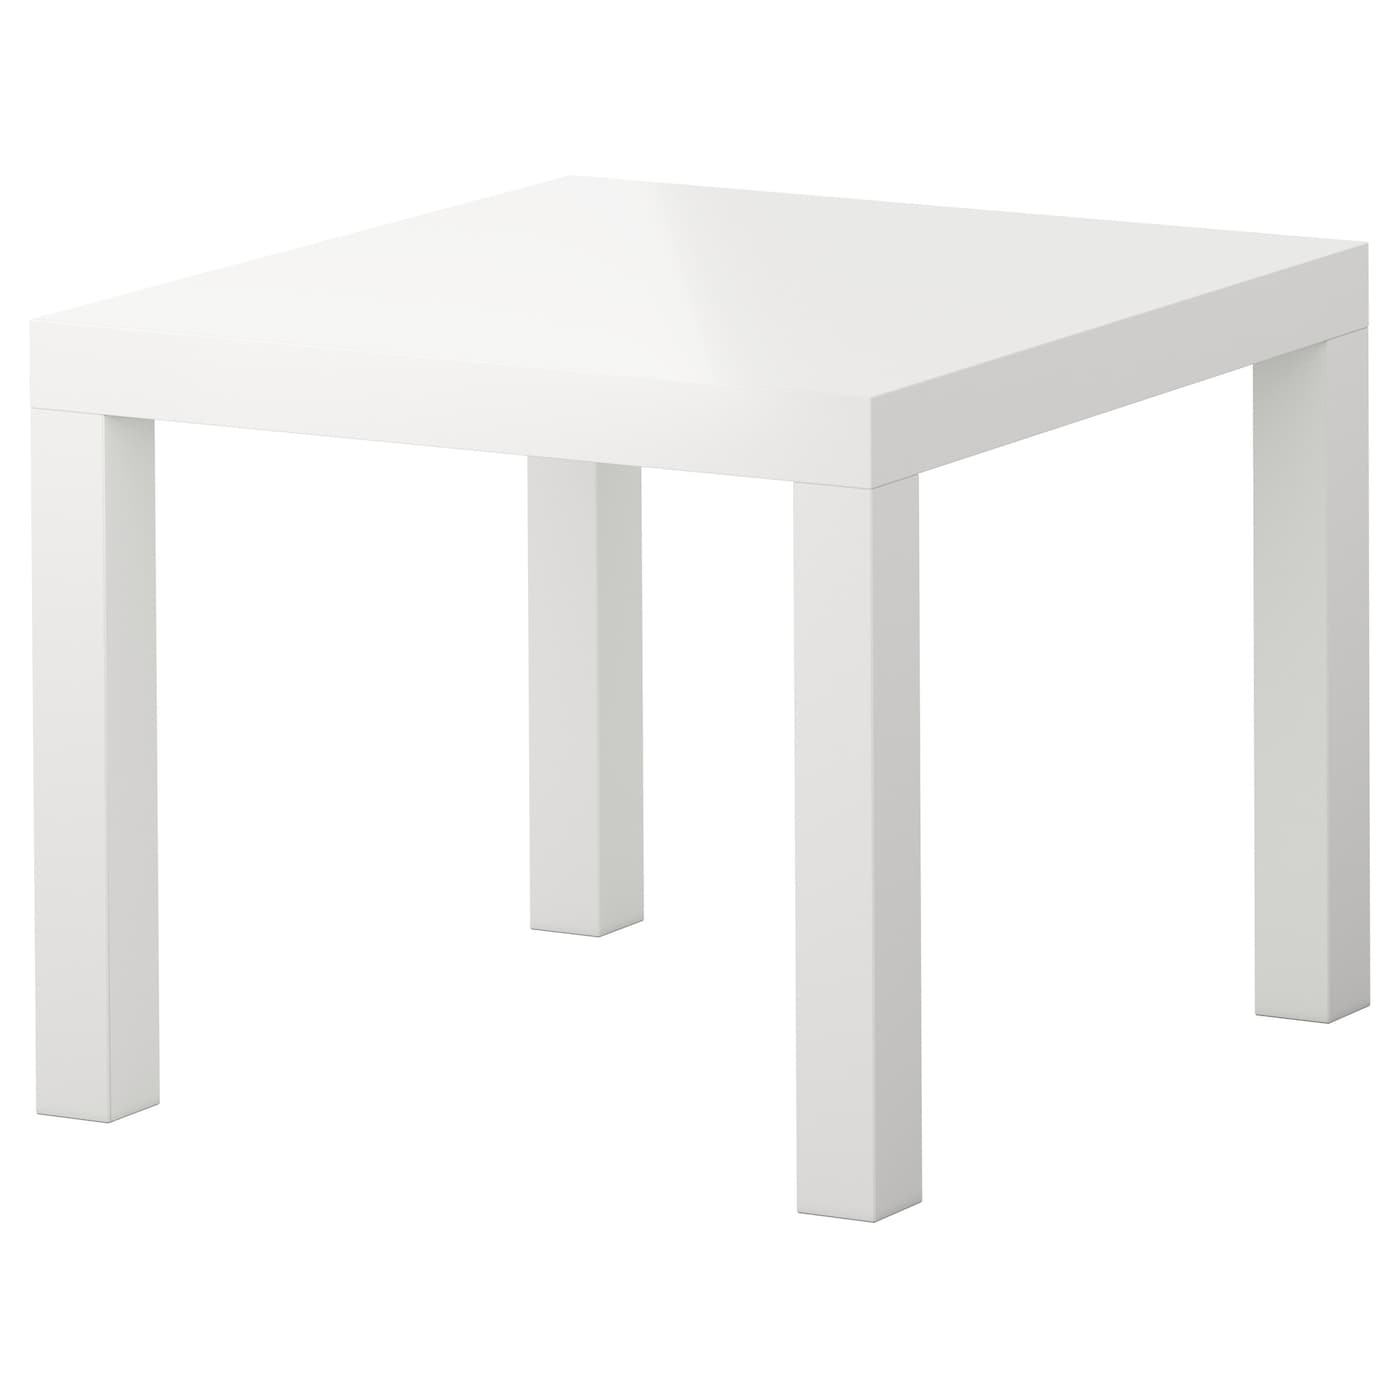 Lack Side Table High Gloss White 55 X 55 Cm Ikea